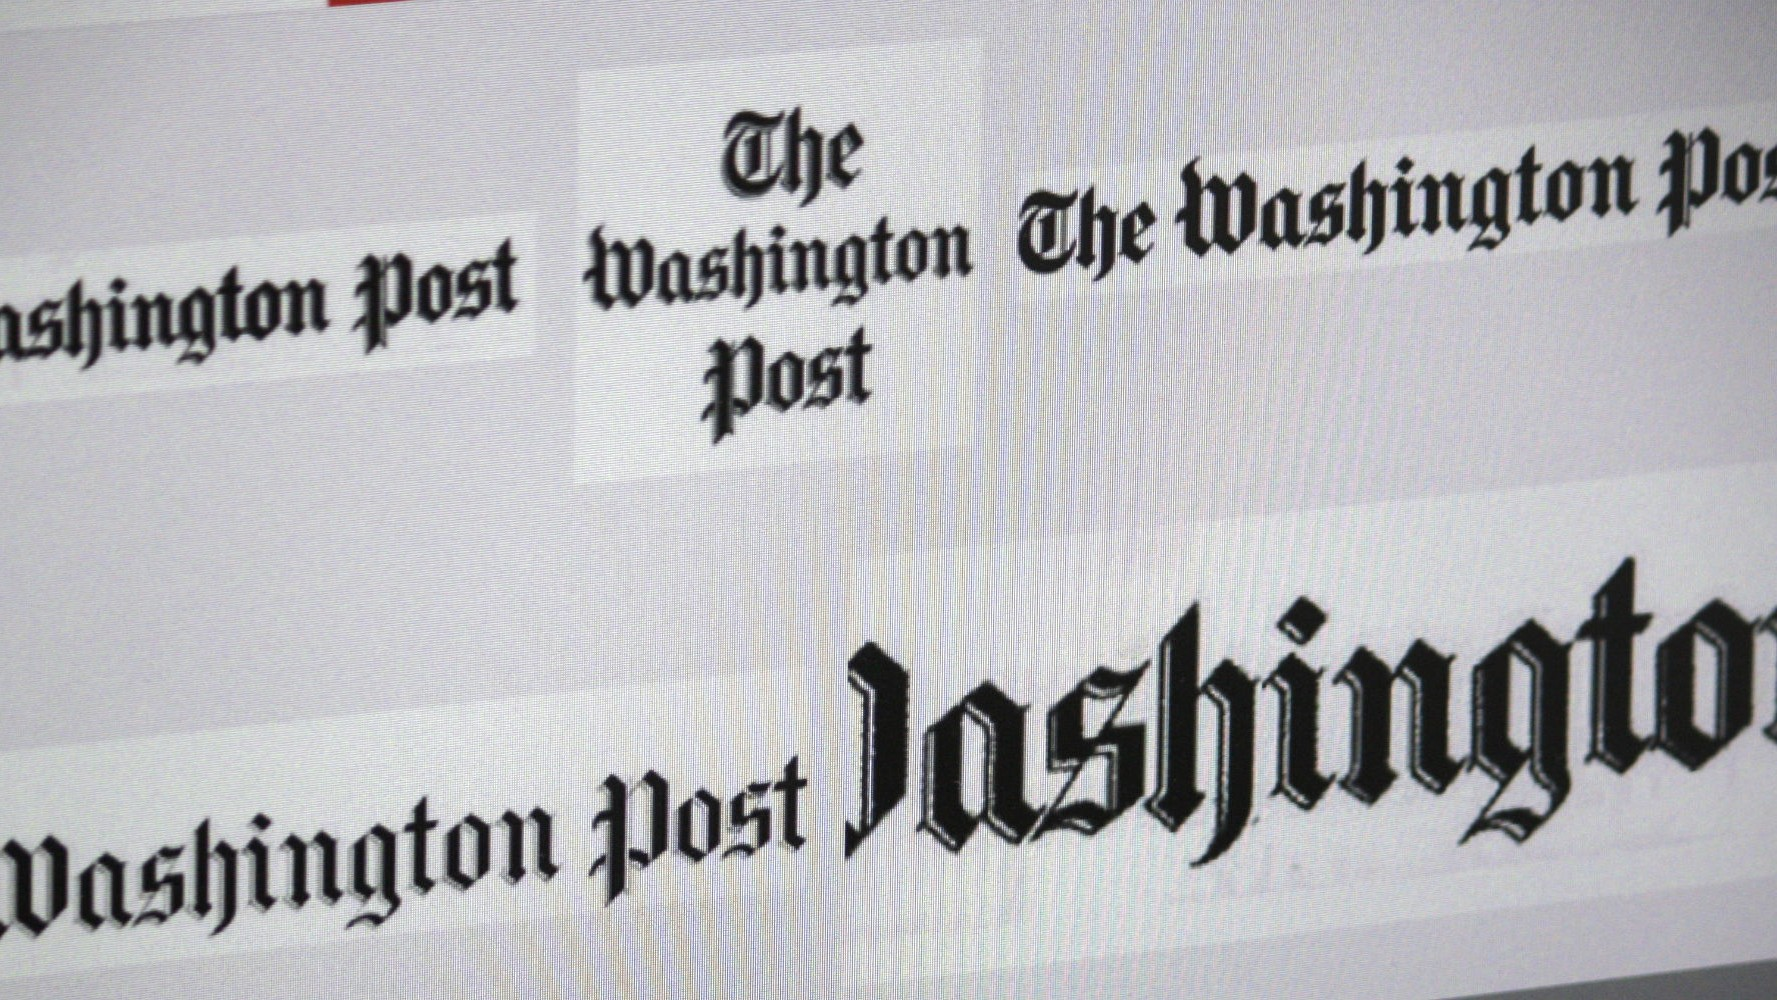 This Is How the Syrian Electronic Army Hacked the Washington Post